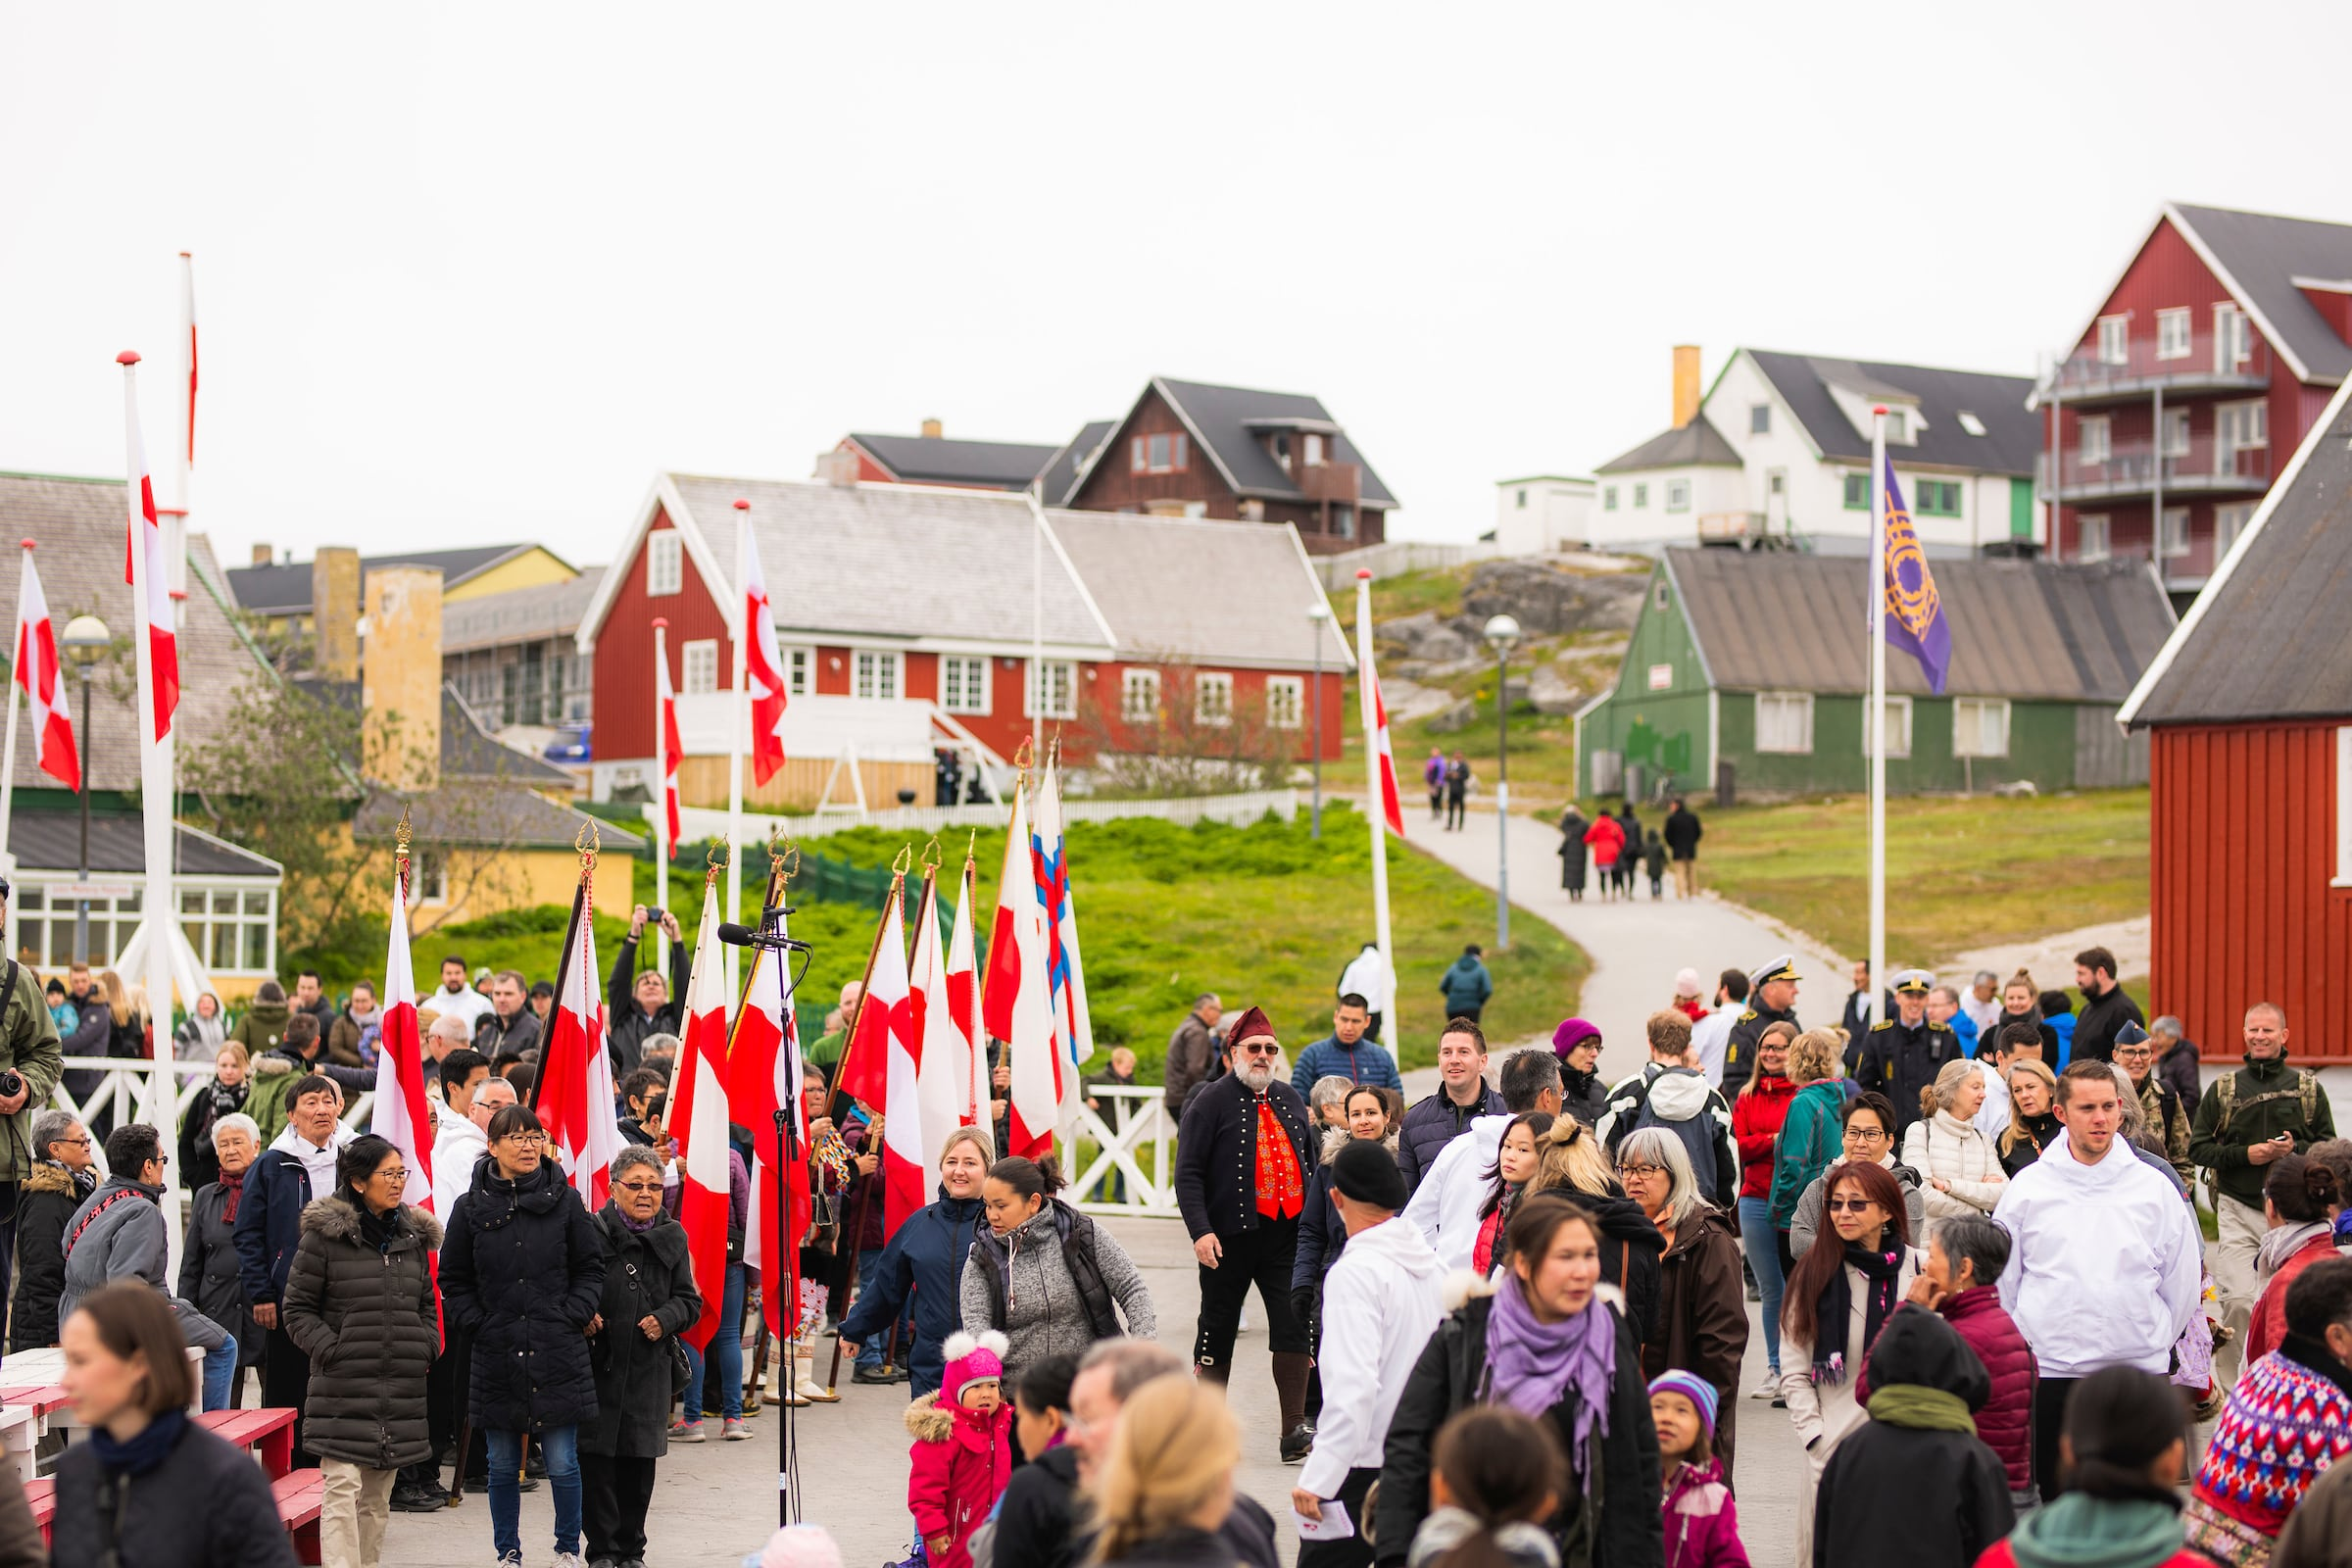 National Day Gathering By The Old Harbour. Photo by Aningaaq R Carlsen - Visit Greenland